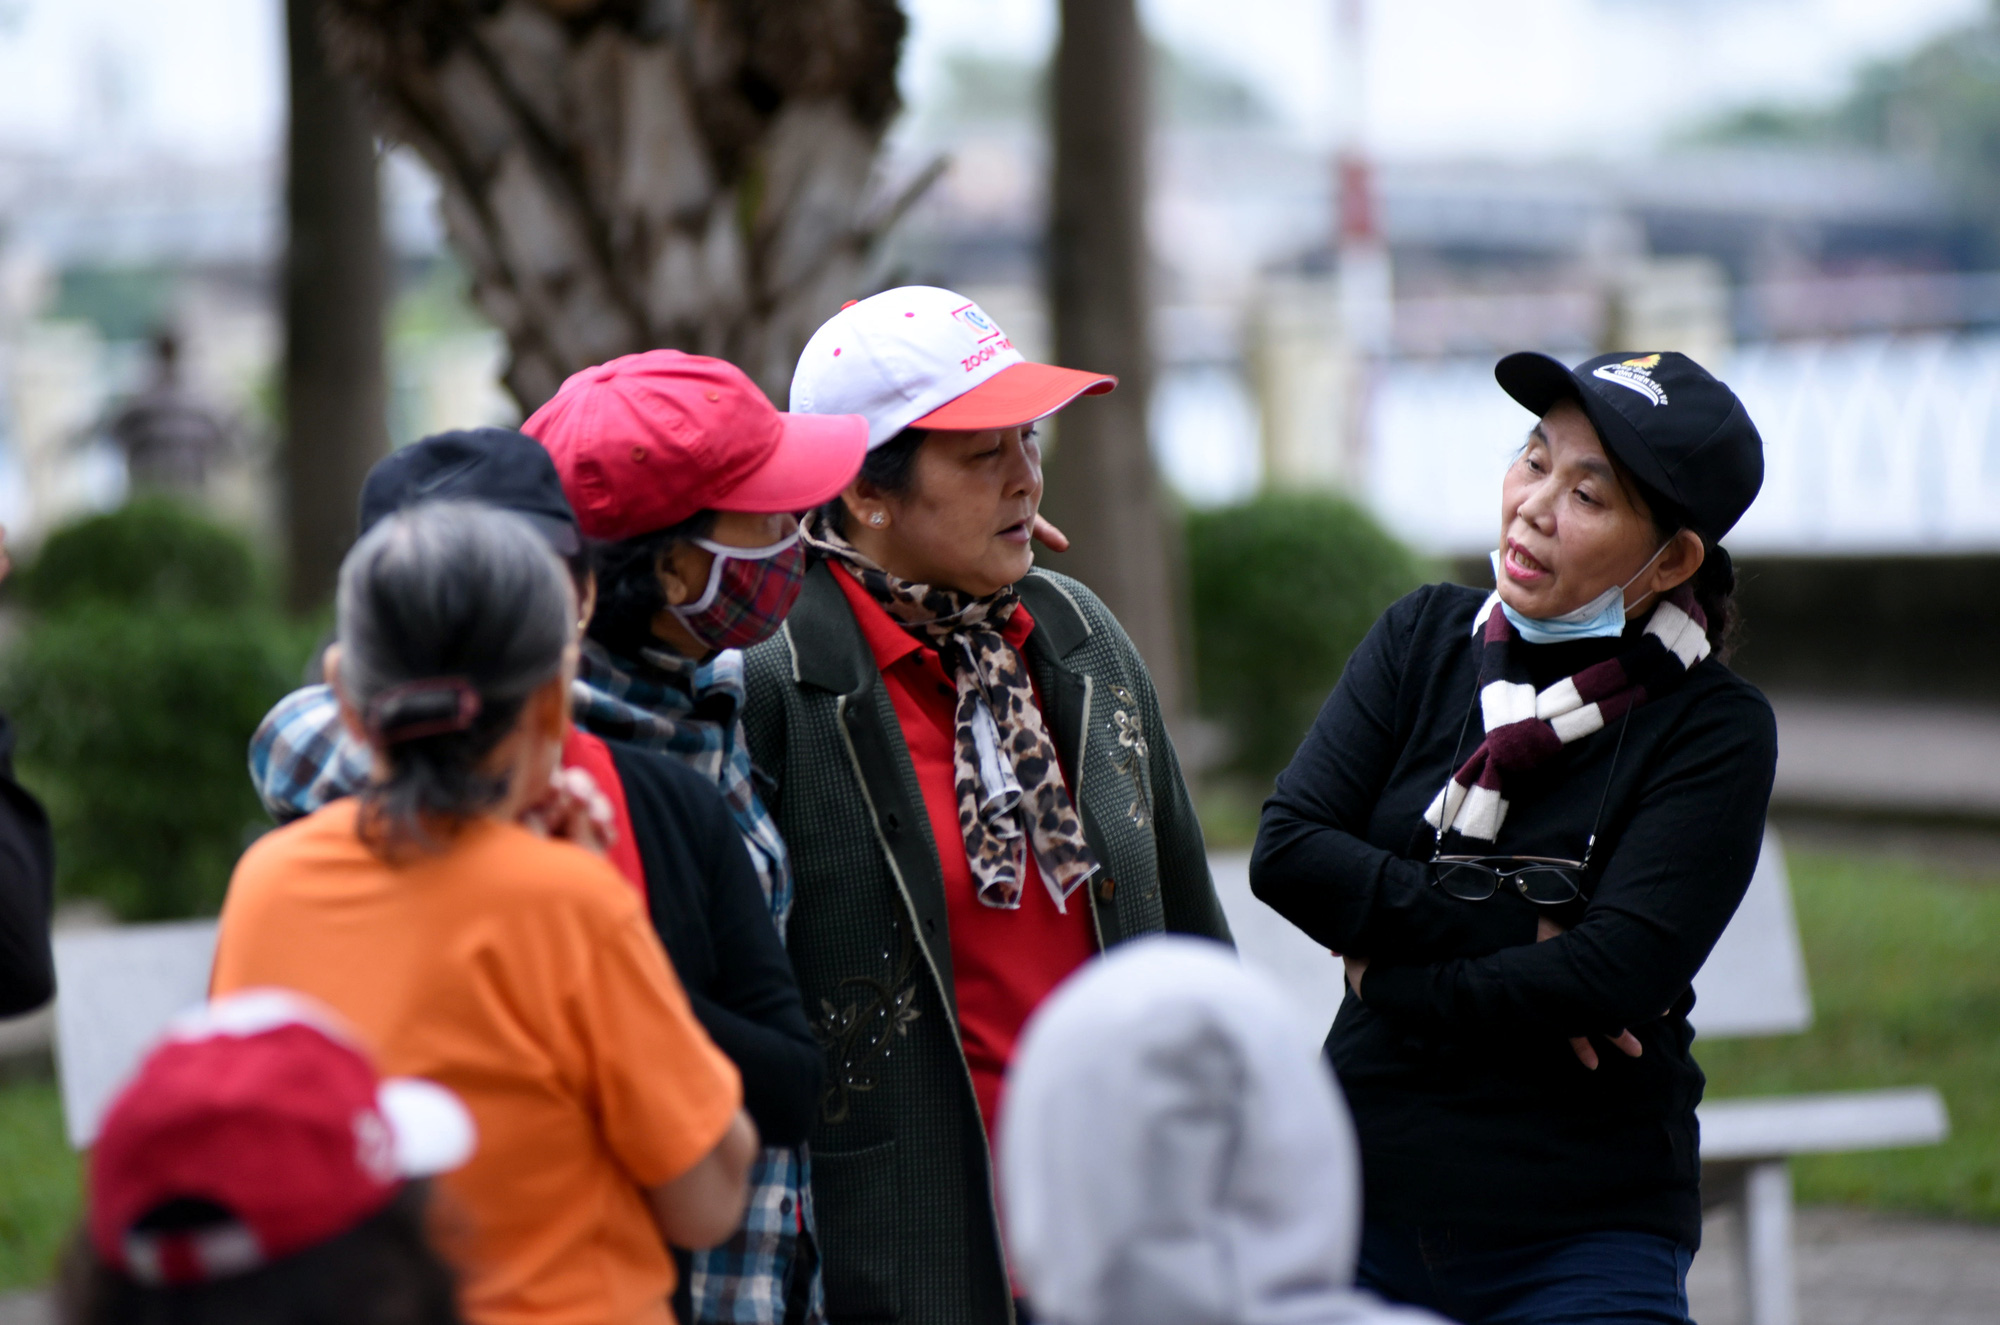 Residents wear jackets and scarves at a park as temperature dips in Ho Chi Minh City on December 22, 2020. Photo: Le Phan / Tuoi Tre